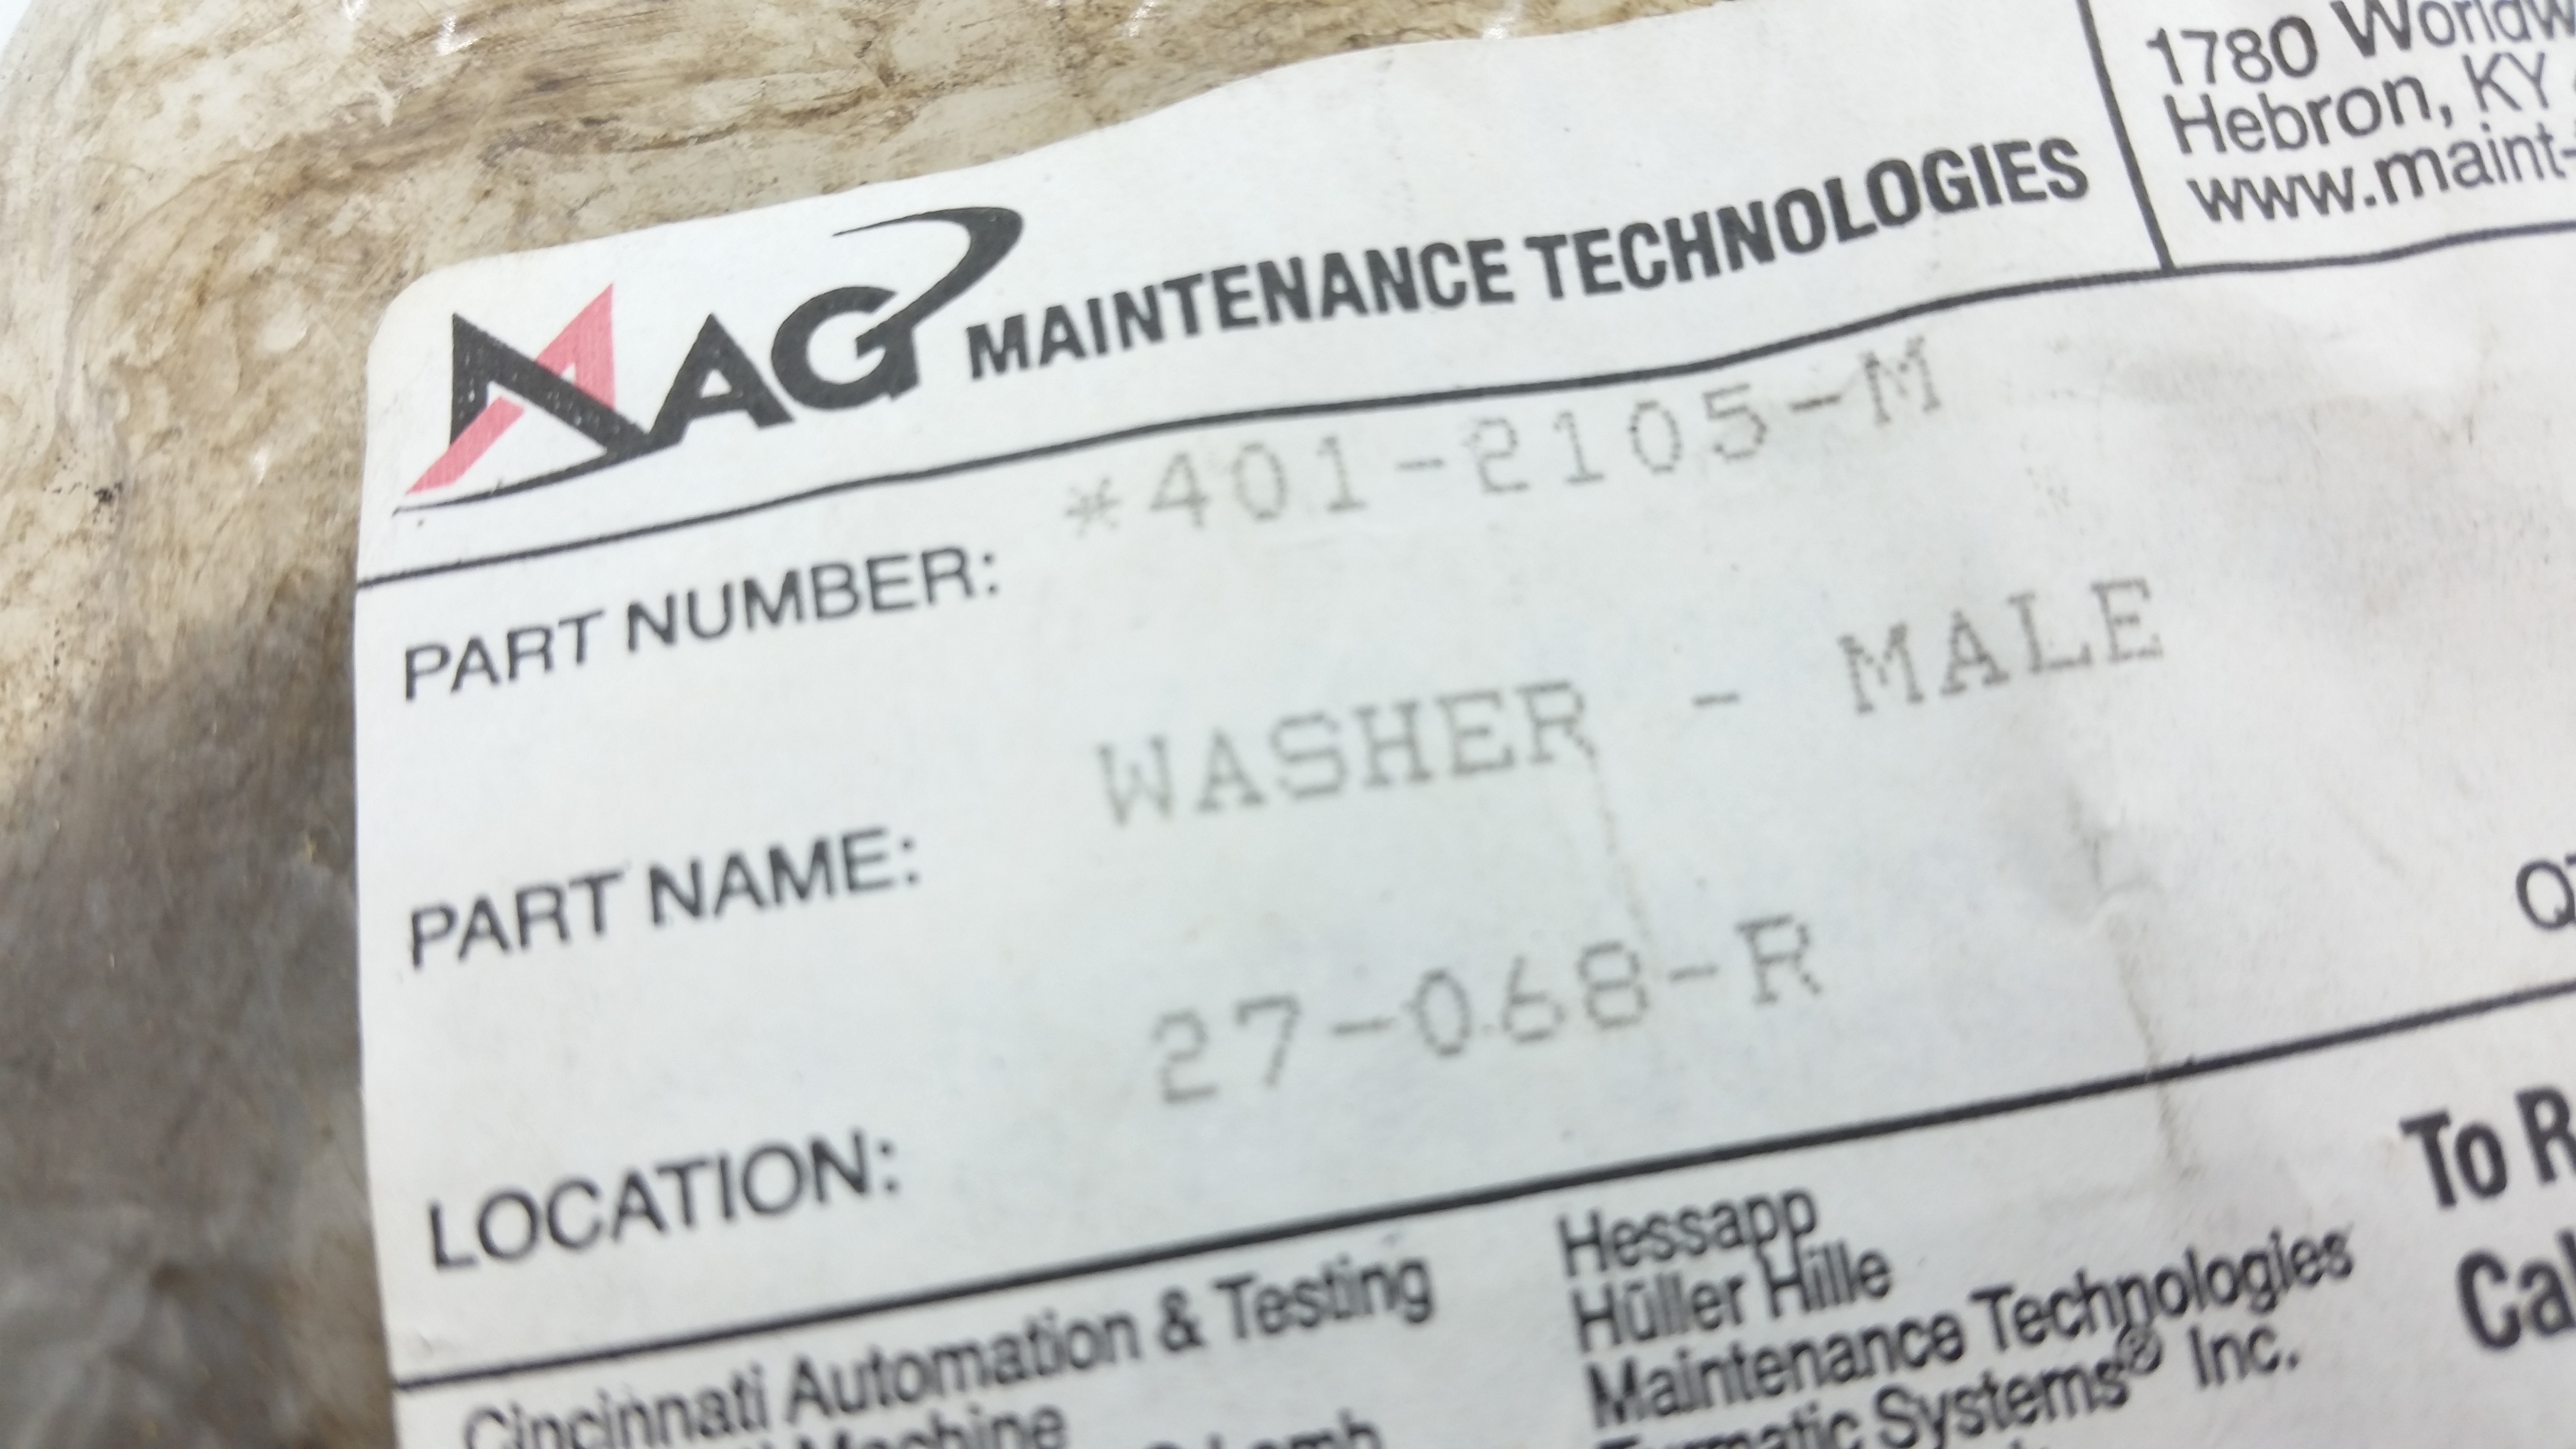 Maintenance Technologies Male Washer 401-2105-M